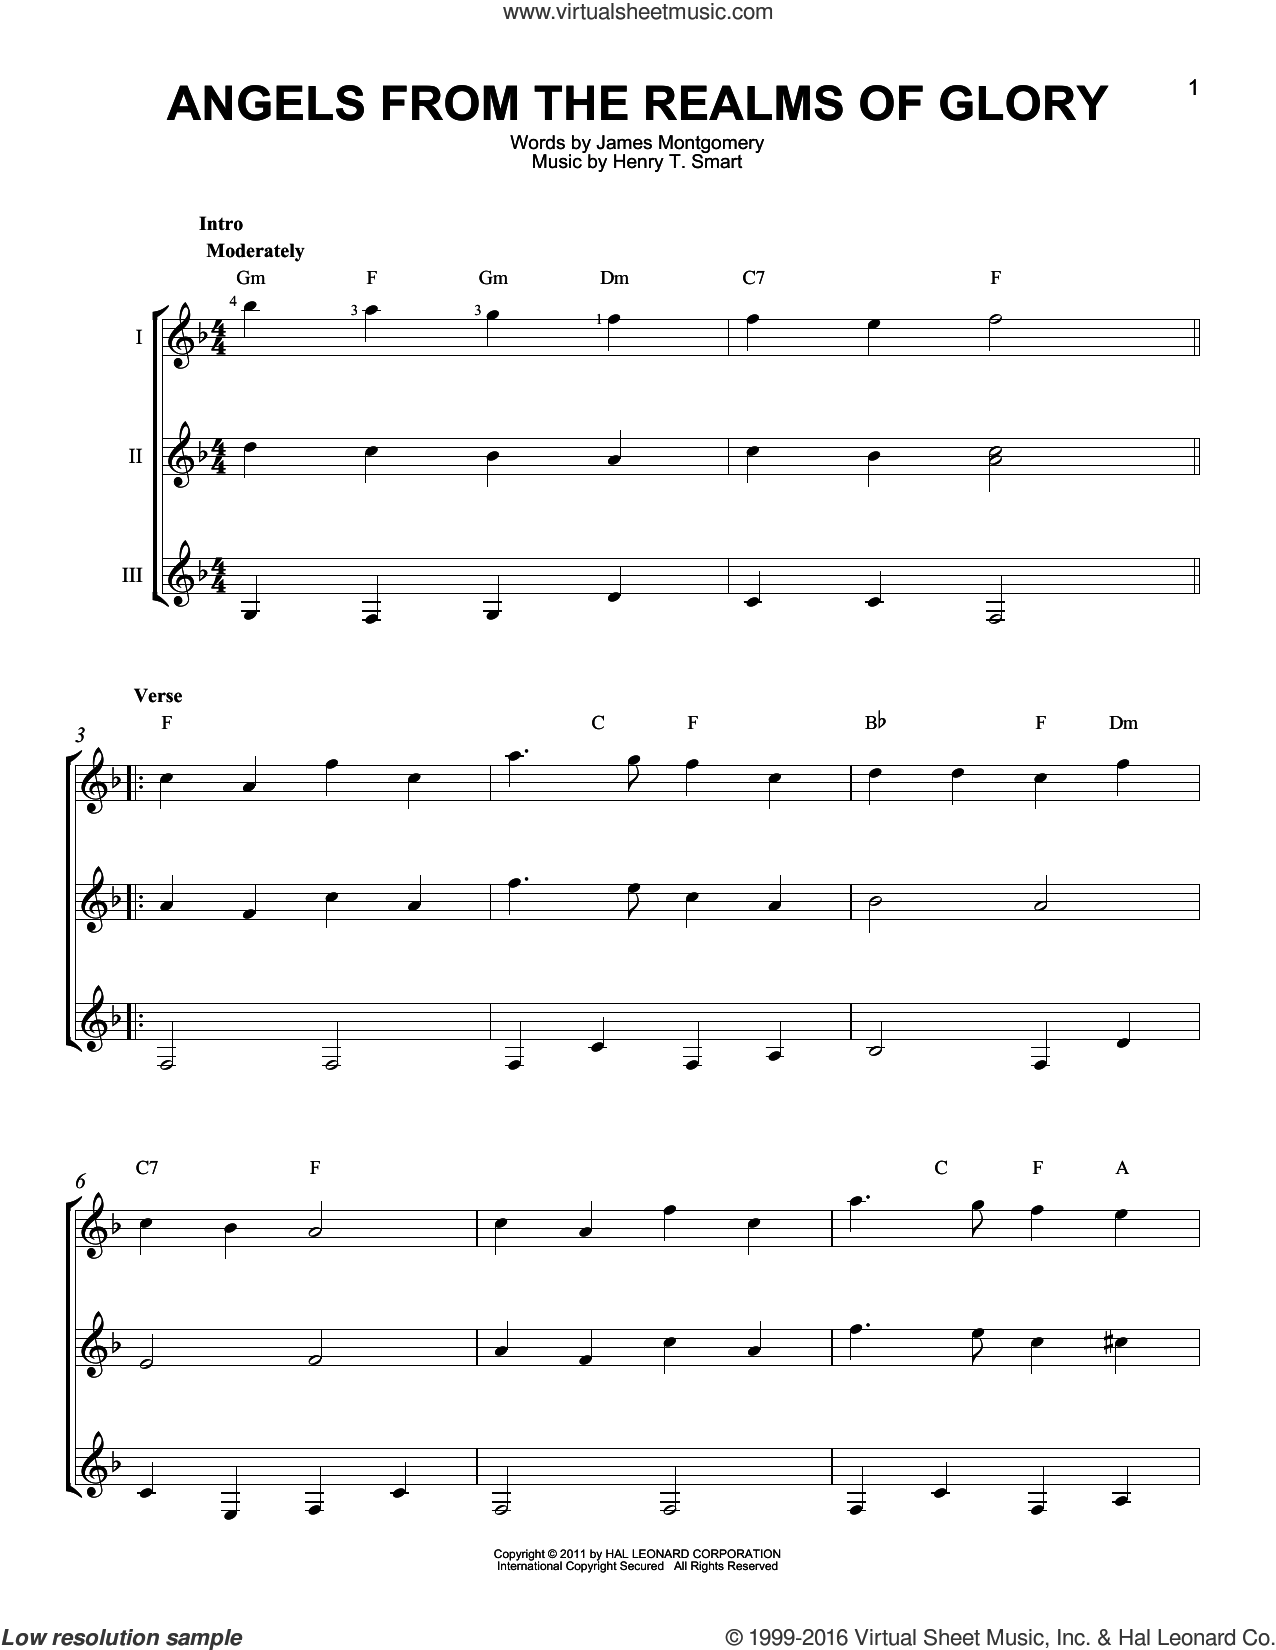 Angels From The Realms Of Glory sheet music for guitar ensemble by James Montgomery and Henry T. Smart, intermediate skill level